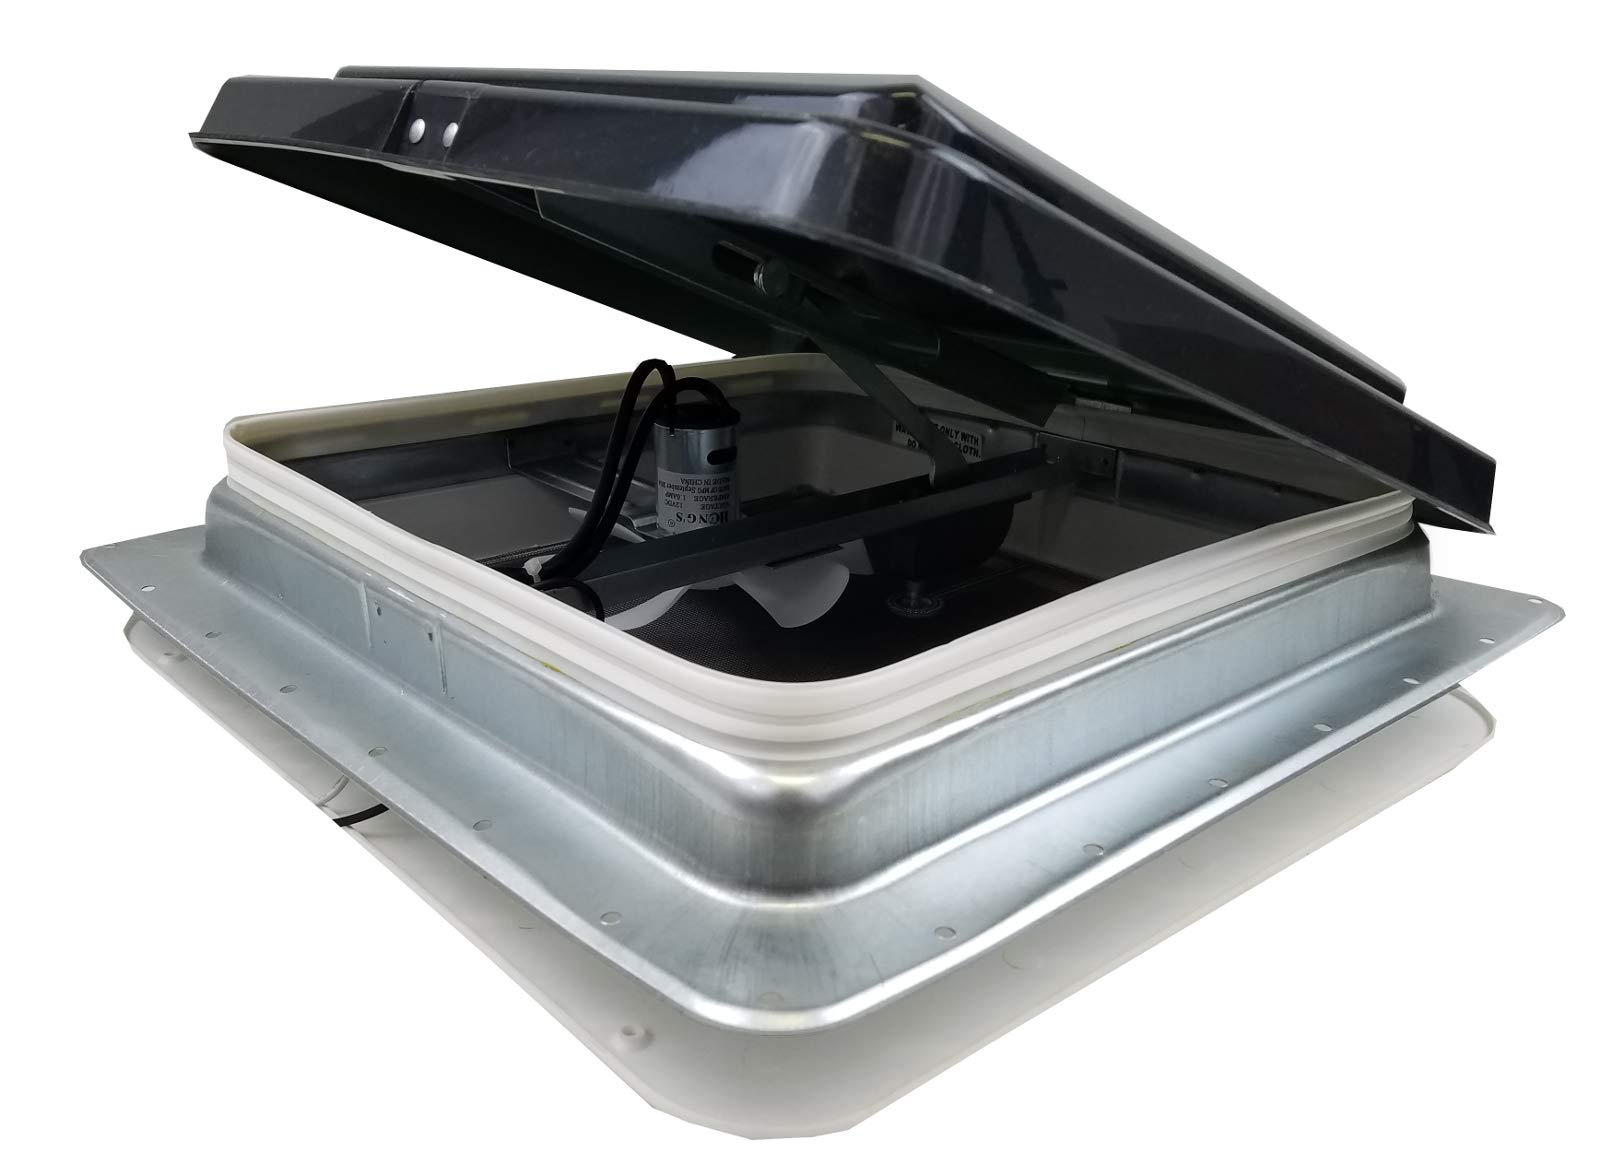 HENG'S 14'' RV CAMPER TRAILER UNIVERSAL SMOKE LID ROOF VENT WITH 12 VOLT FAN 74112- C